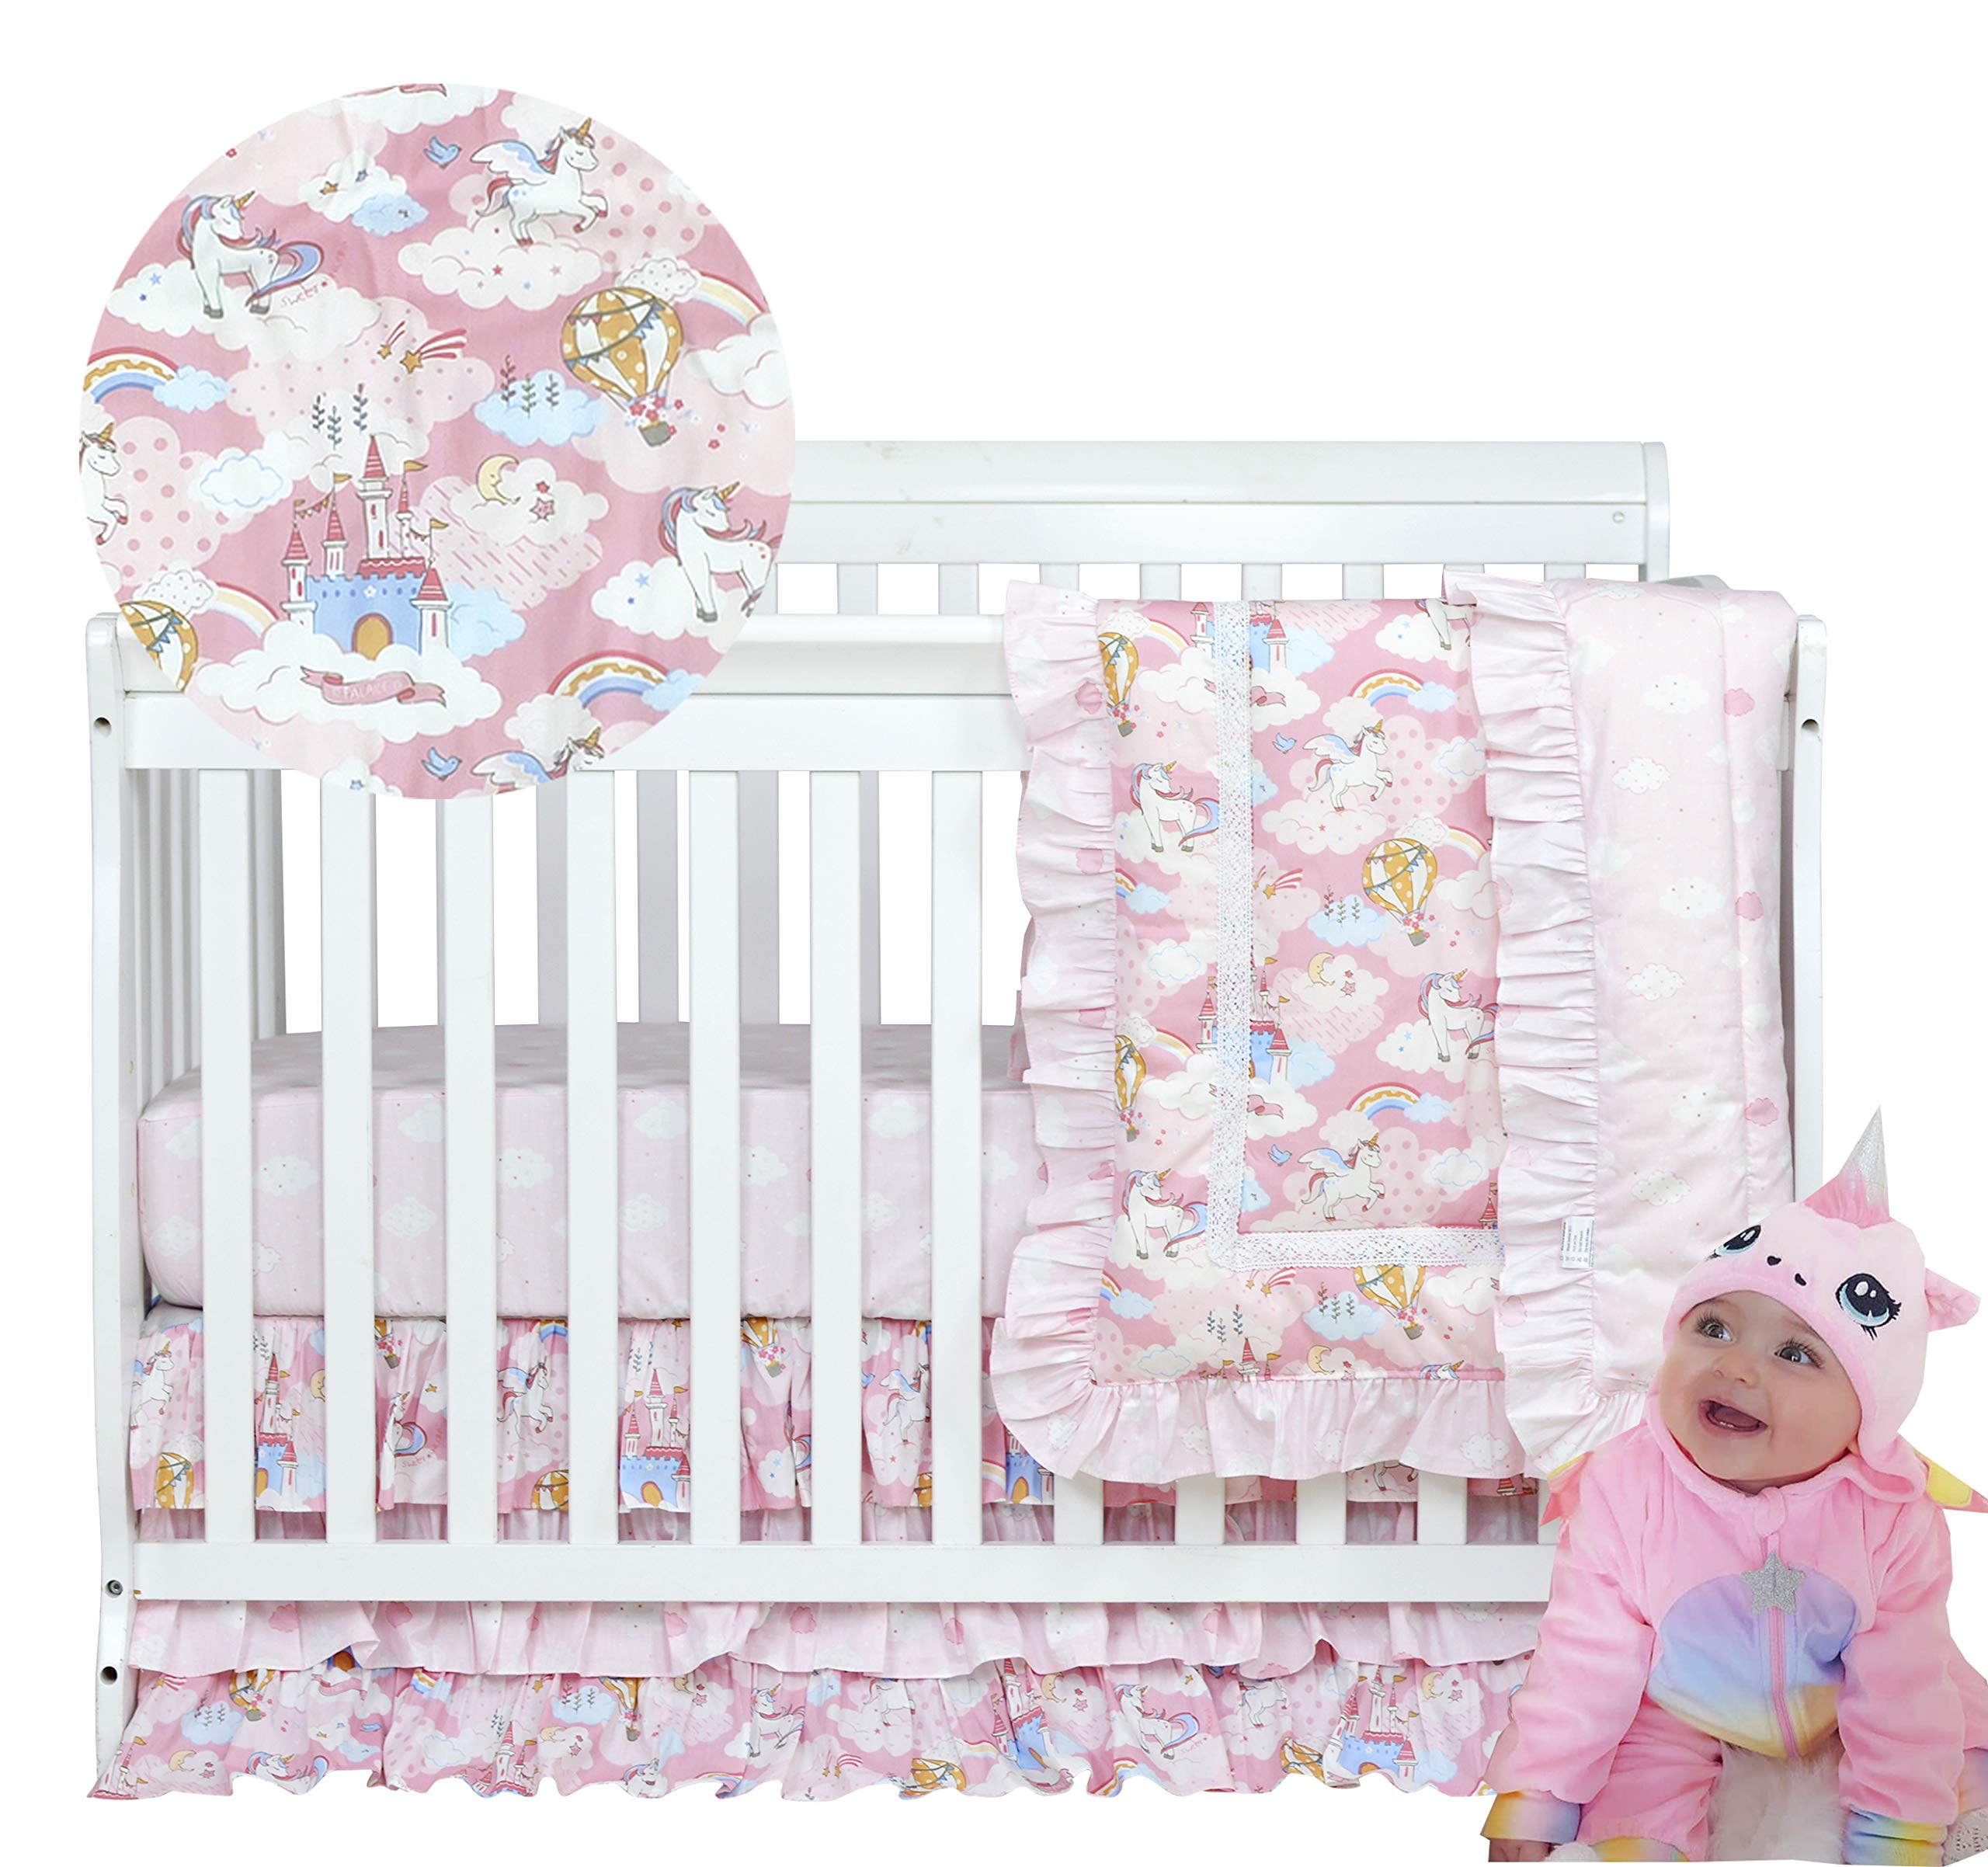 Brandream Unicorn Crib Bedding Sets for Girls Pink Nursery Bedding with Rainbow, Organic Cotton Ruffle Comforter Sets with Cute Cloud Star Print 3 Piece, Hot Baby Shower Gift